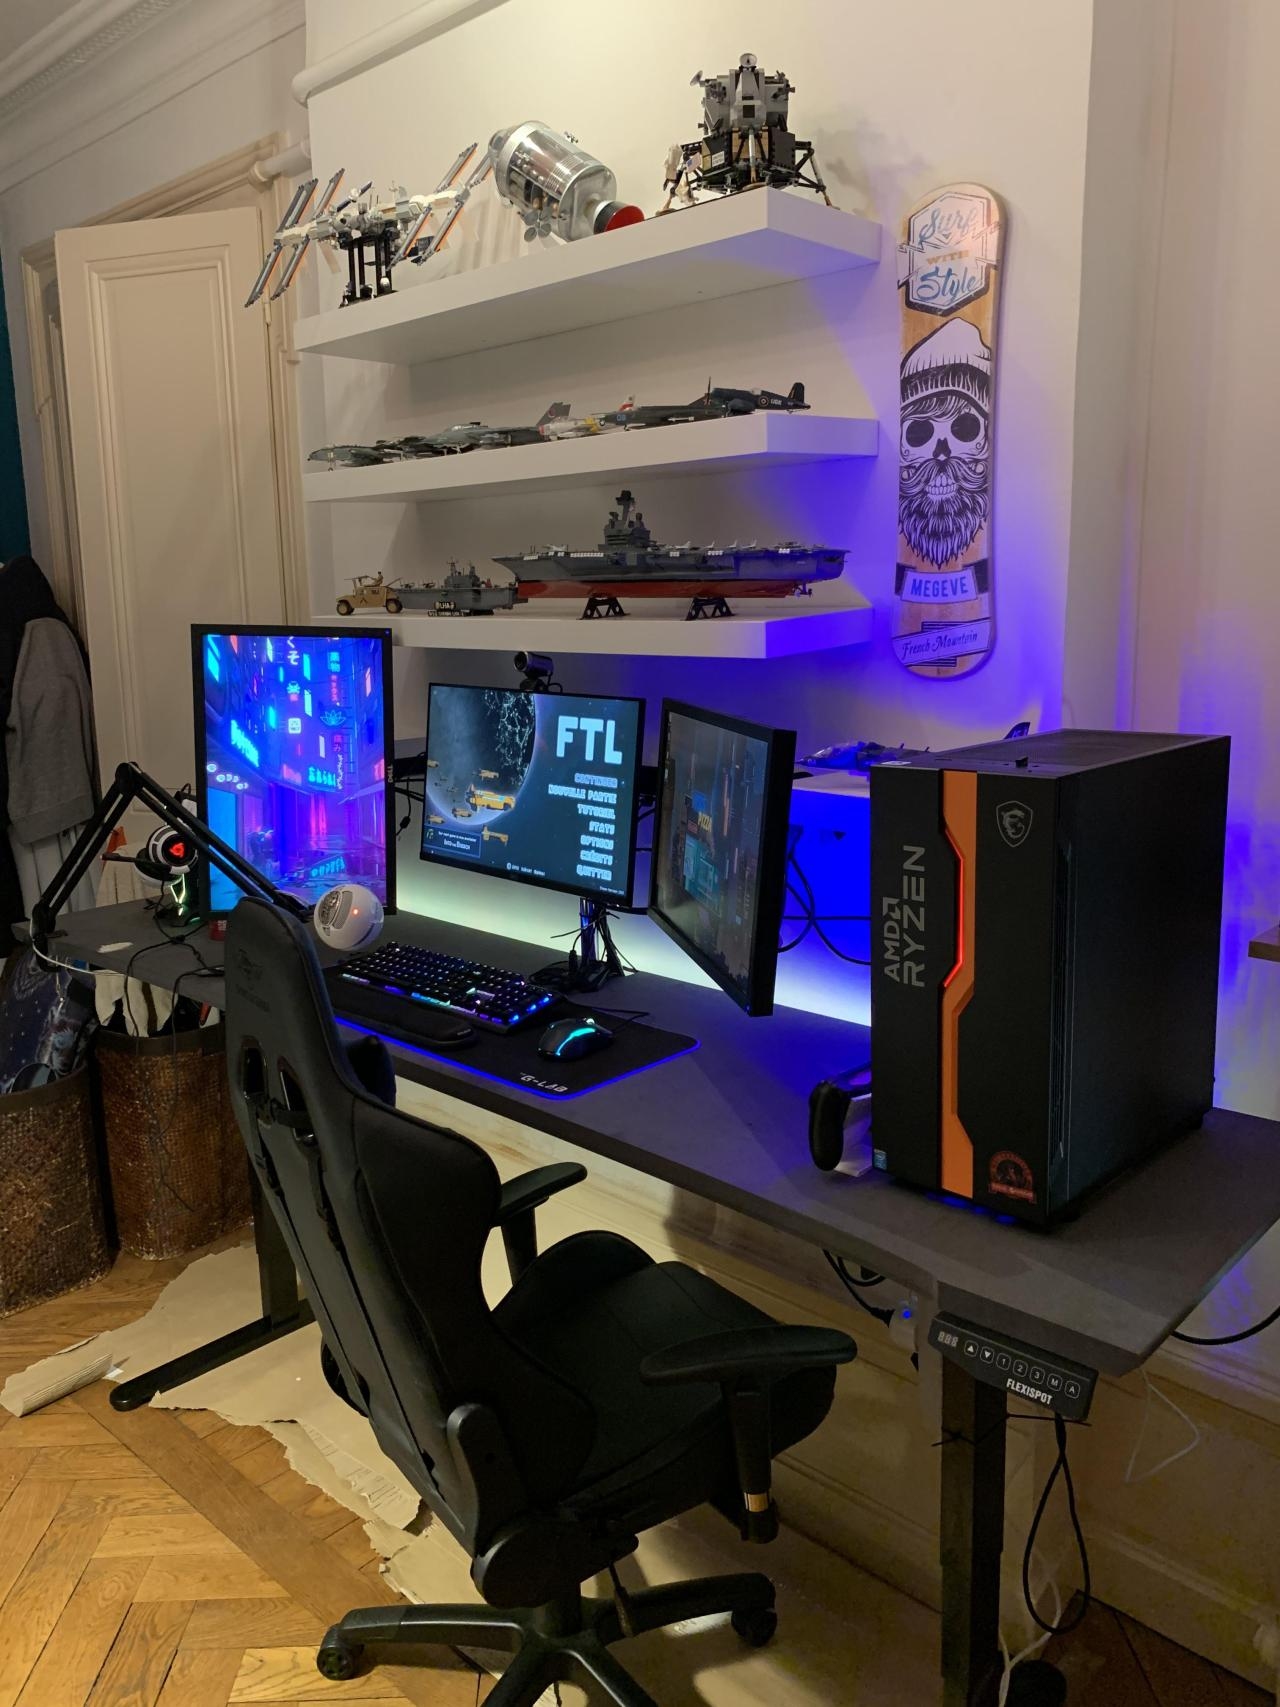 After all these year my dream setup is finally complete! #pcmasterrace#computer#technology#tech#amd#nvidia#intel#gaming#gaming pc#gaming computer#ga